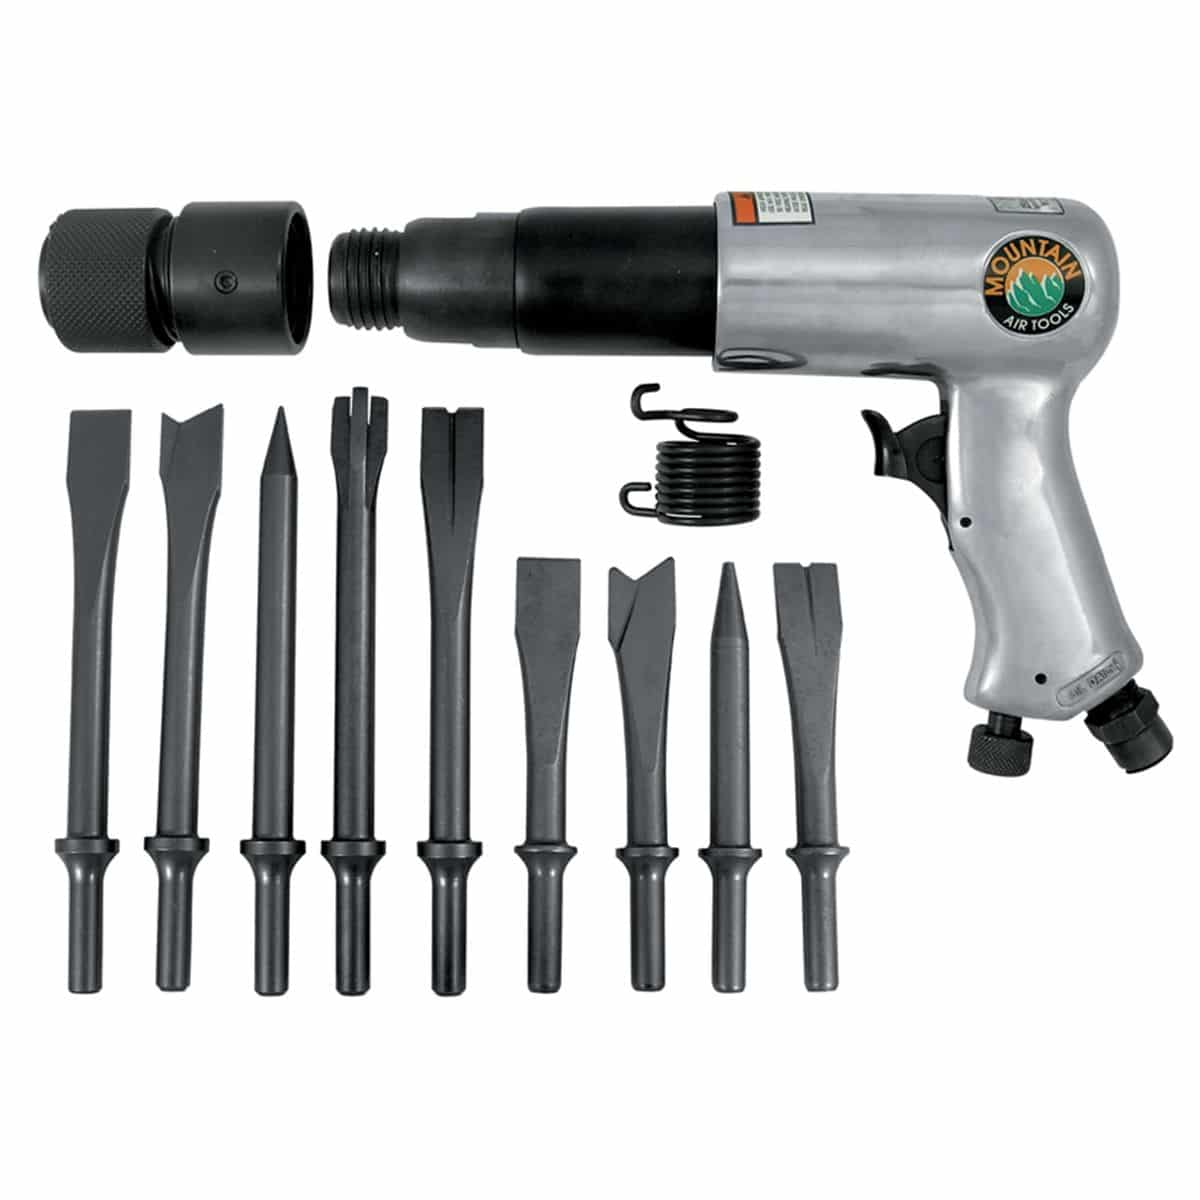 How to use an air hammer